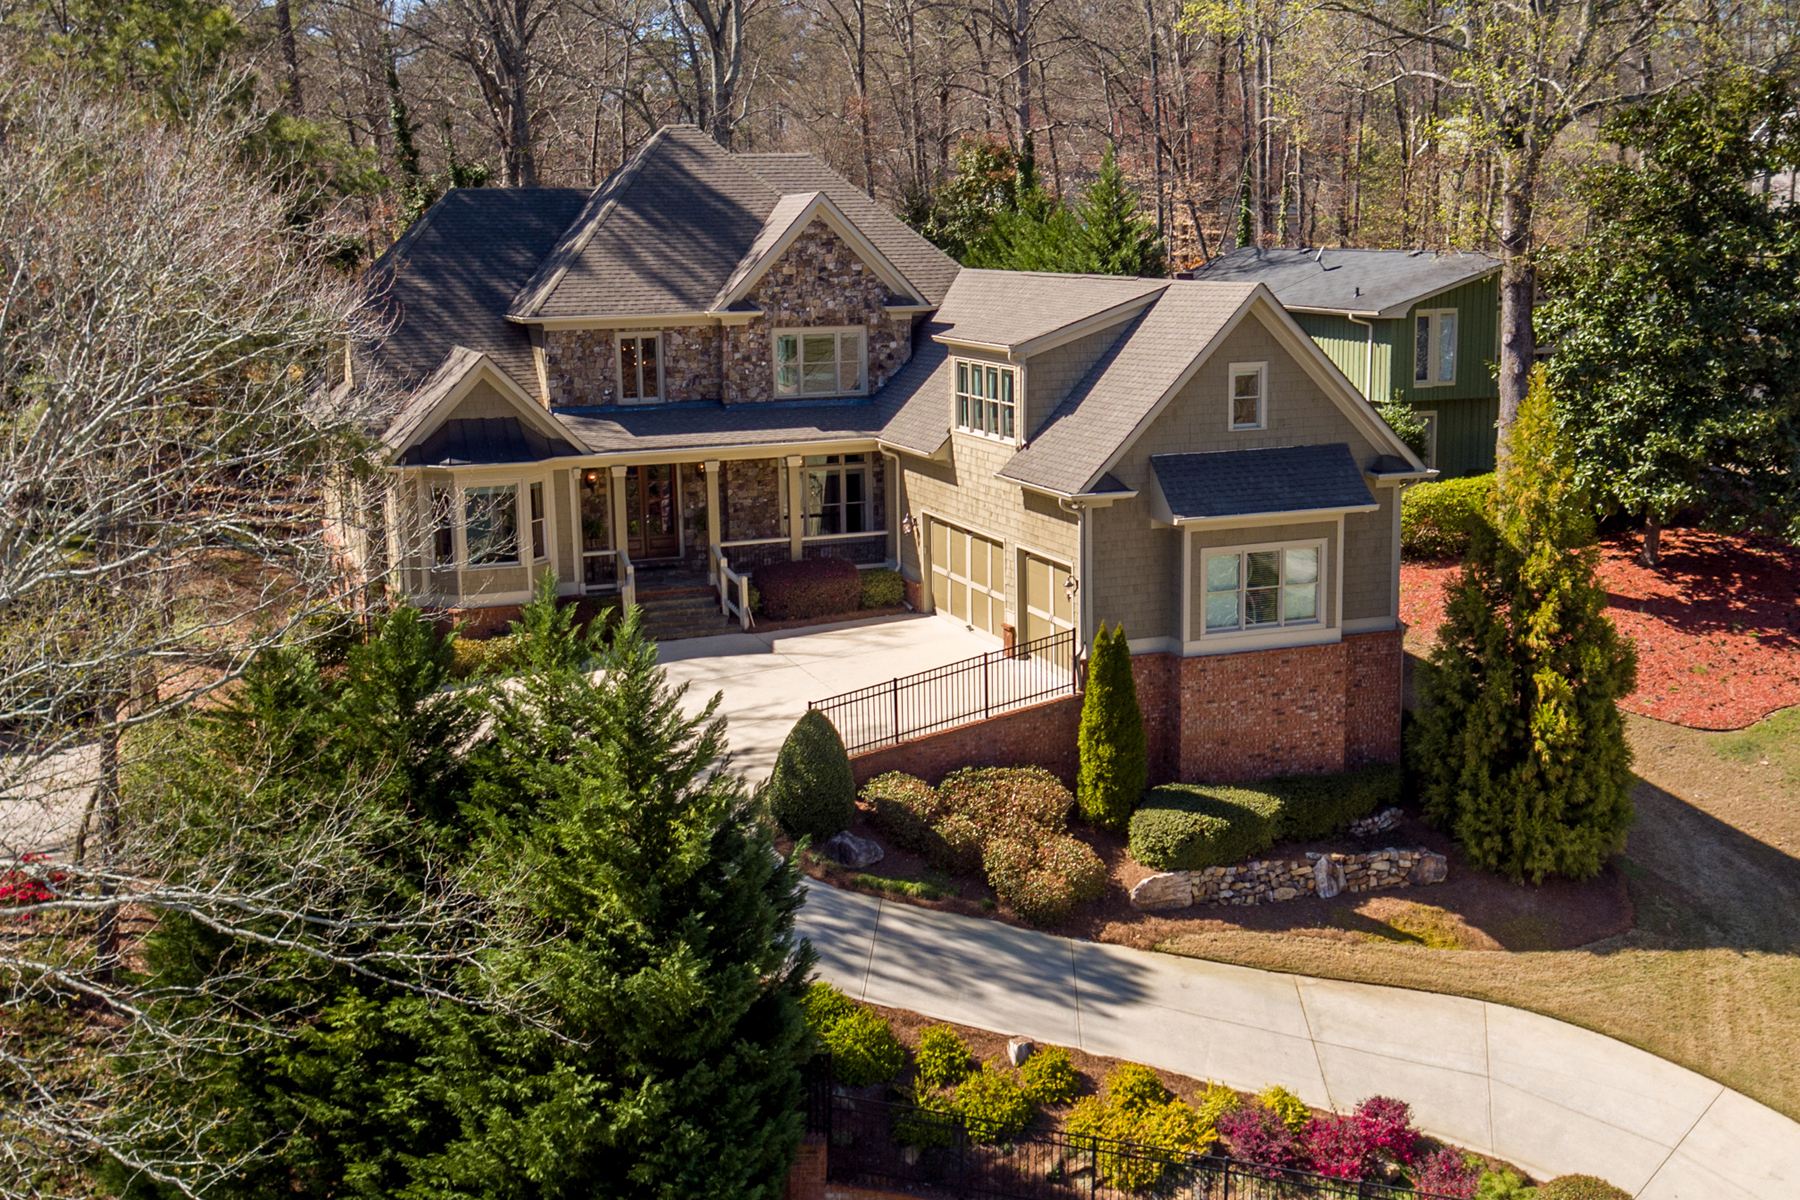 Villa per Vendita alle ore Private Captivating Home In Top East Cobb School District 3542 Clubland Drive Marietta, Georgia, 30068 Stati Uniti